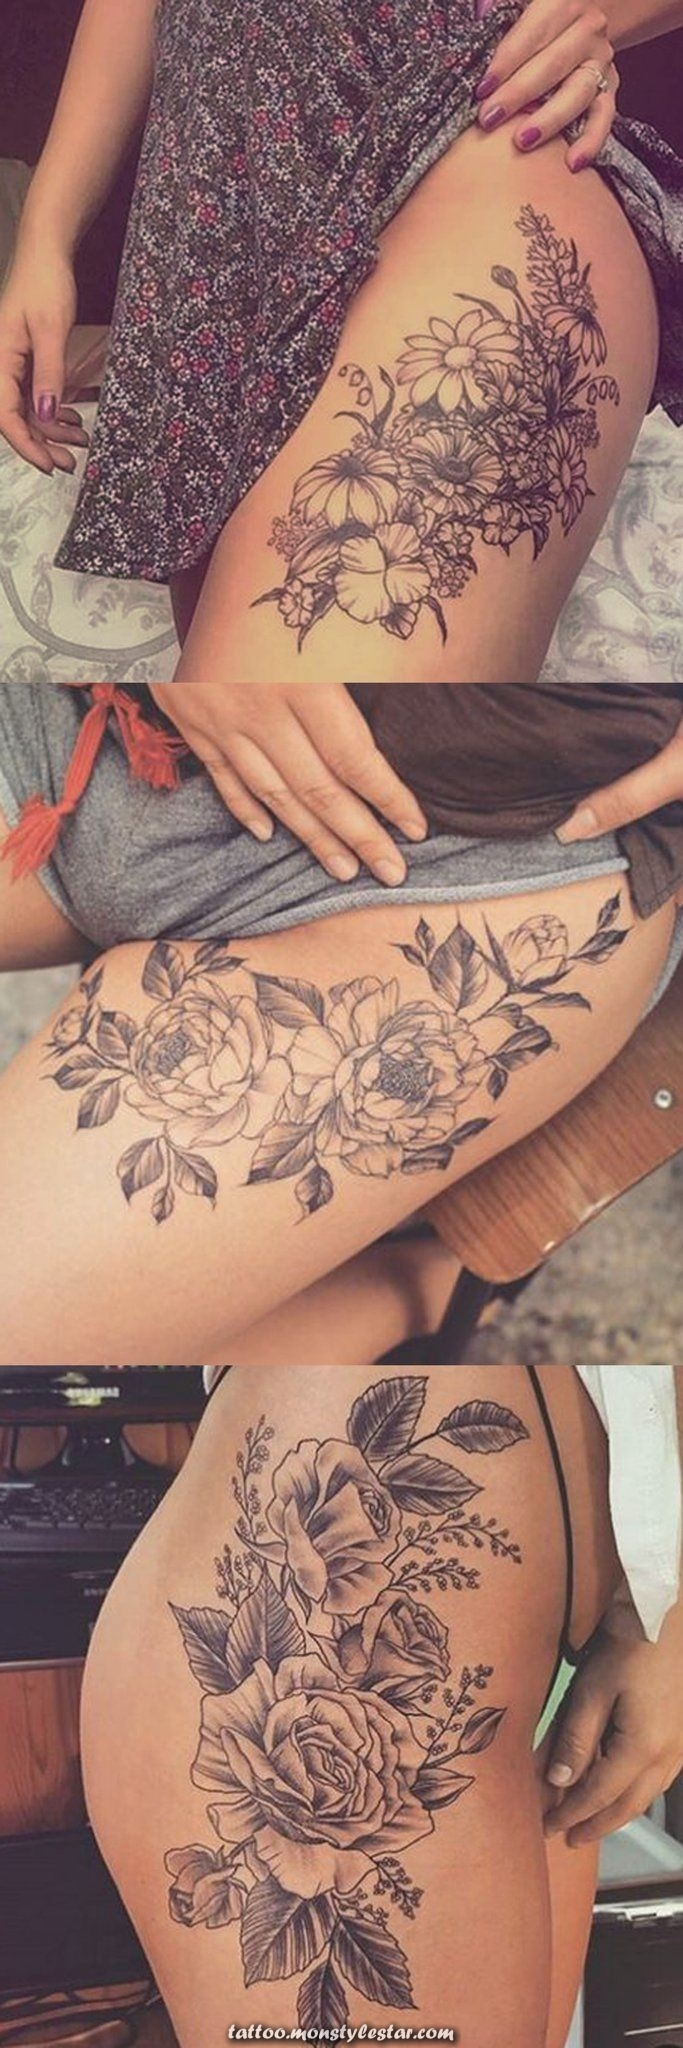 Wild Rose Thigh Tattoo Ideas at MyBodiArt.com Flower delicate floral leg ...